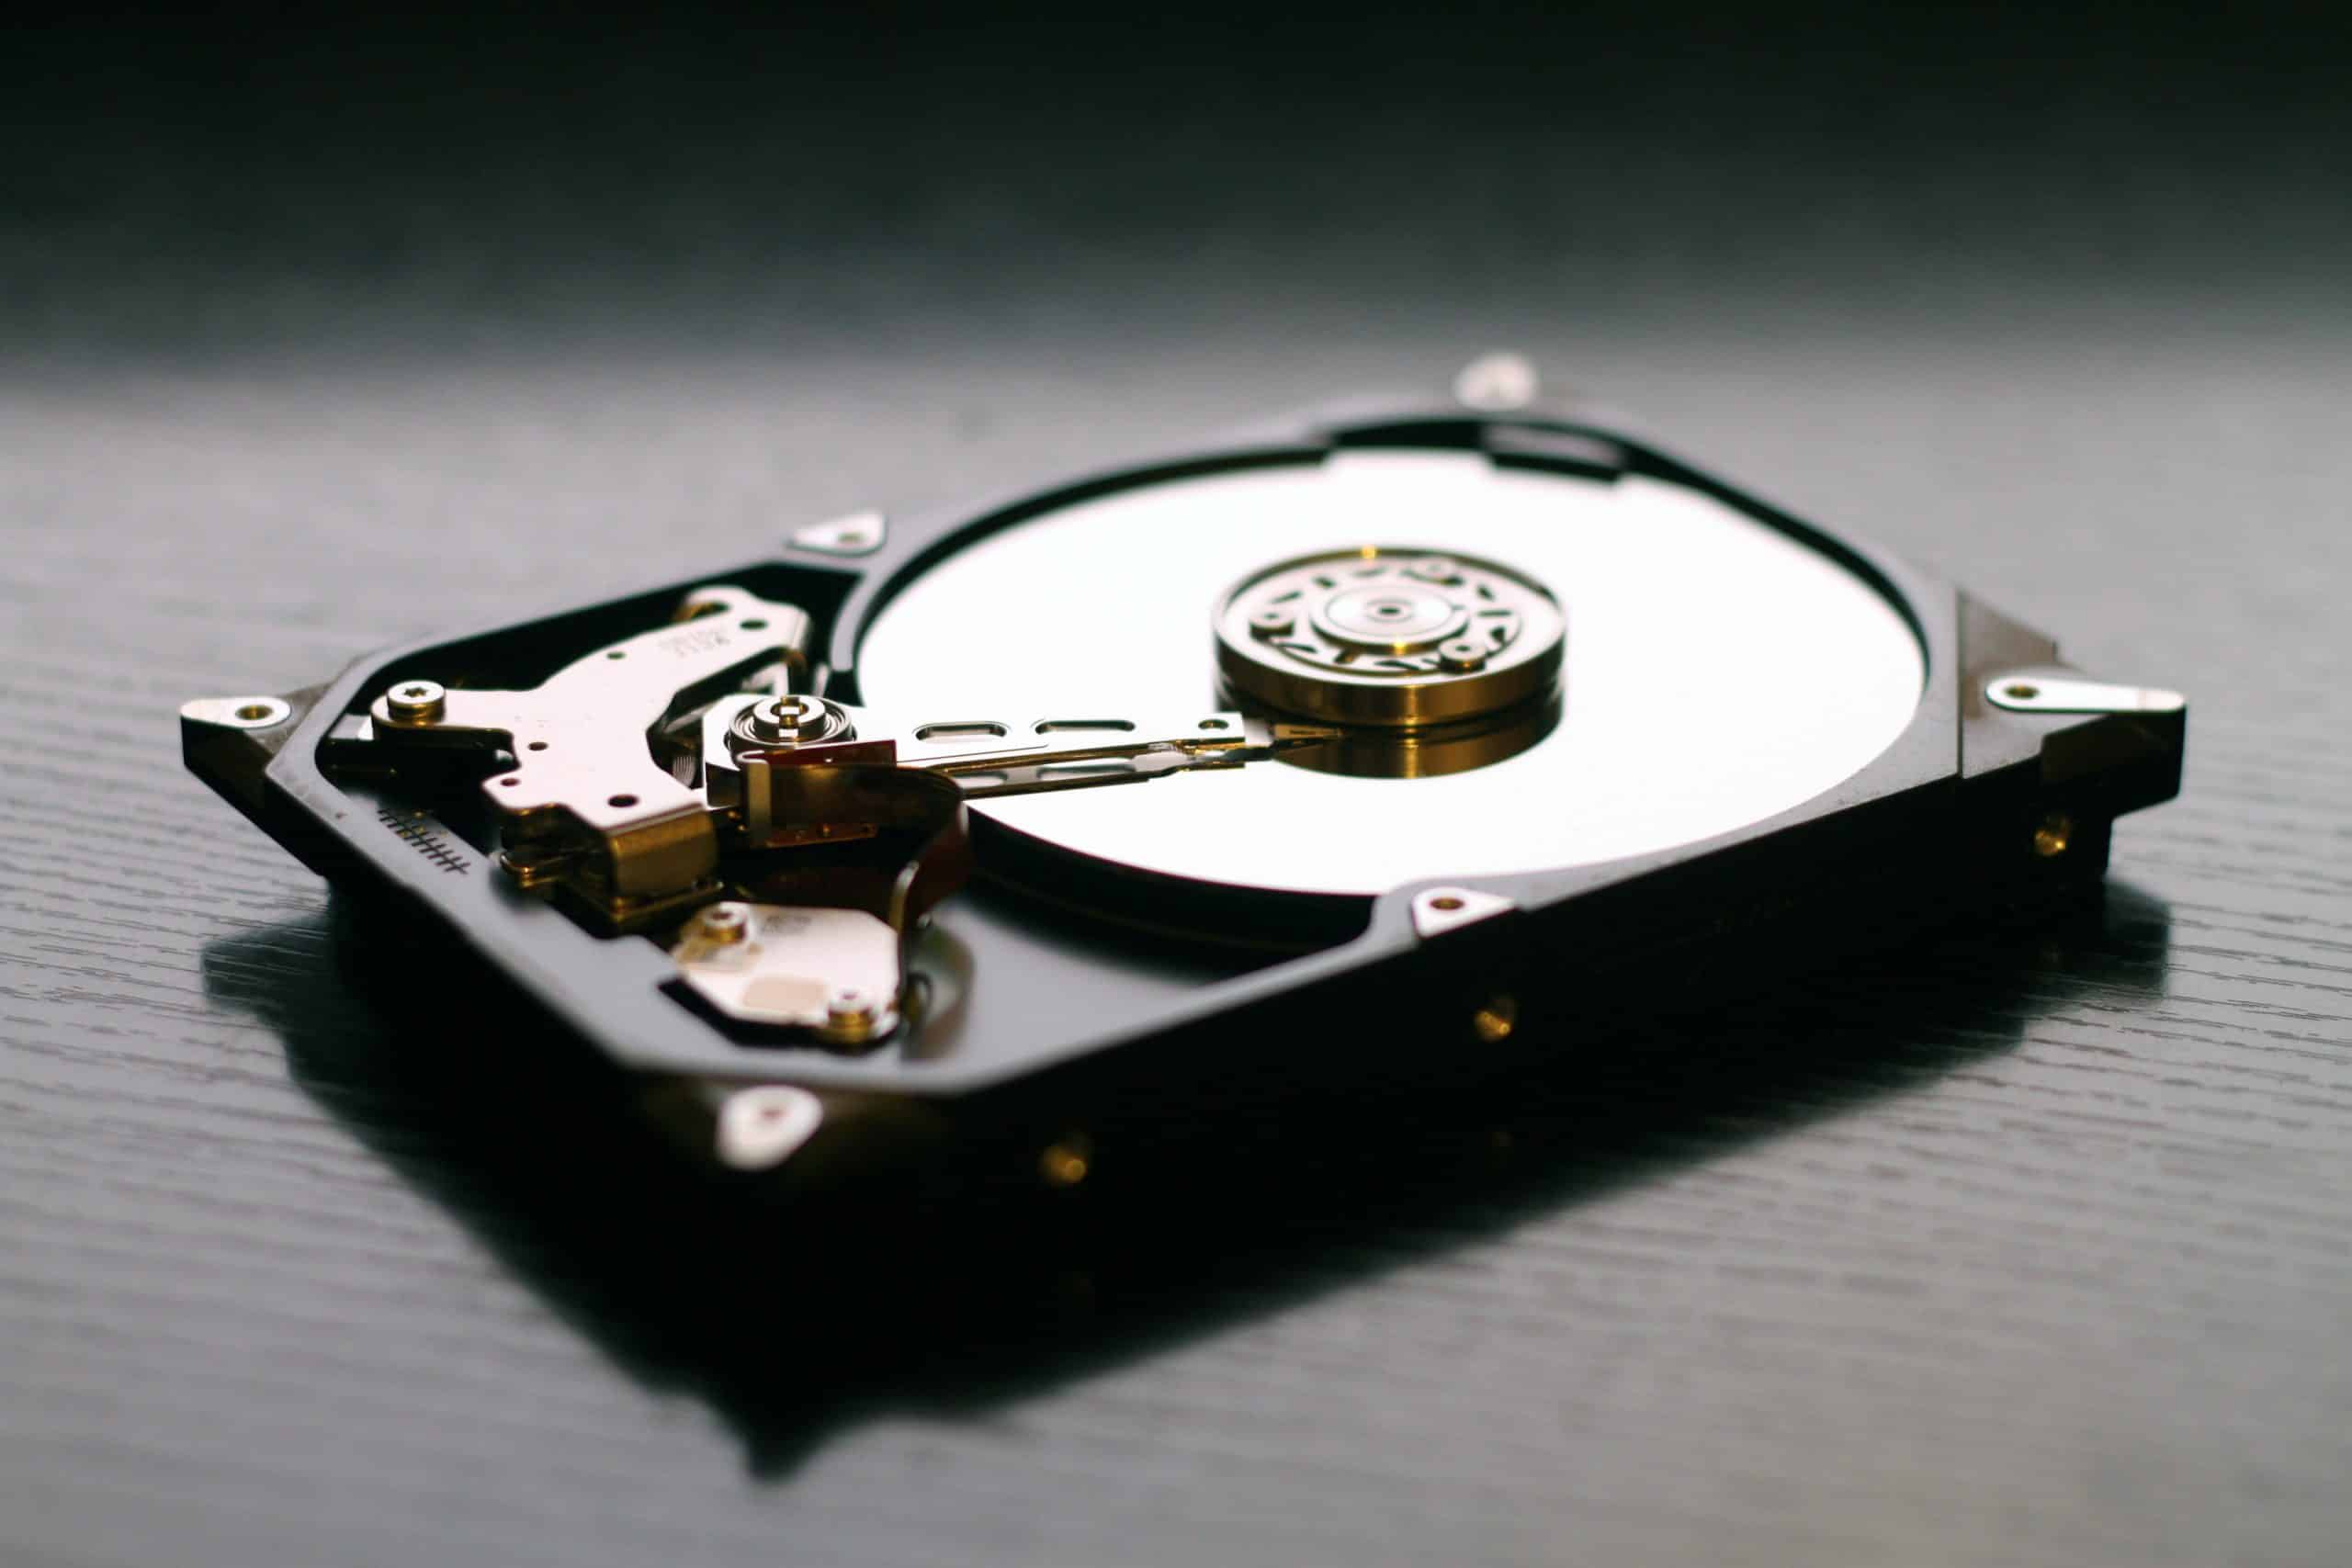 What causes your hard drive to crash?